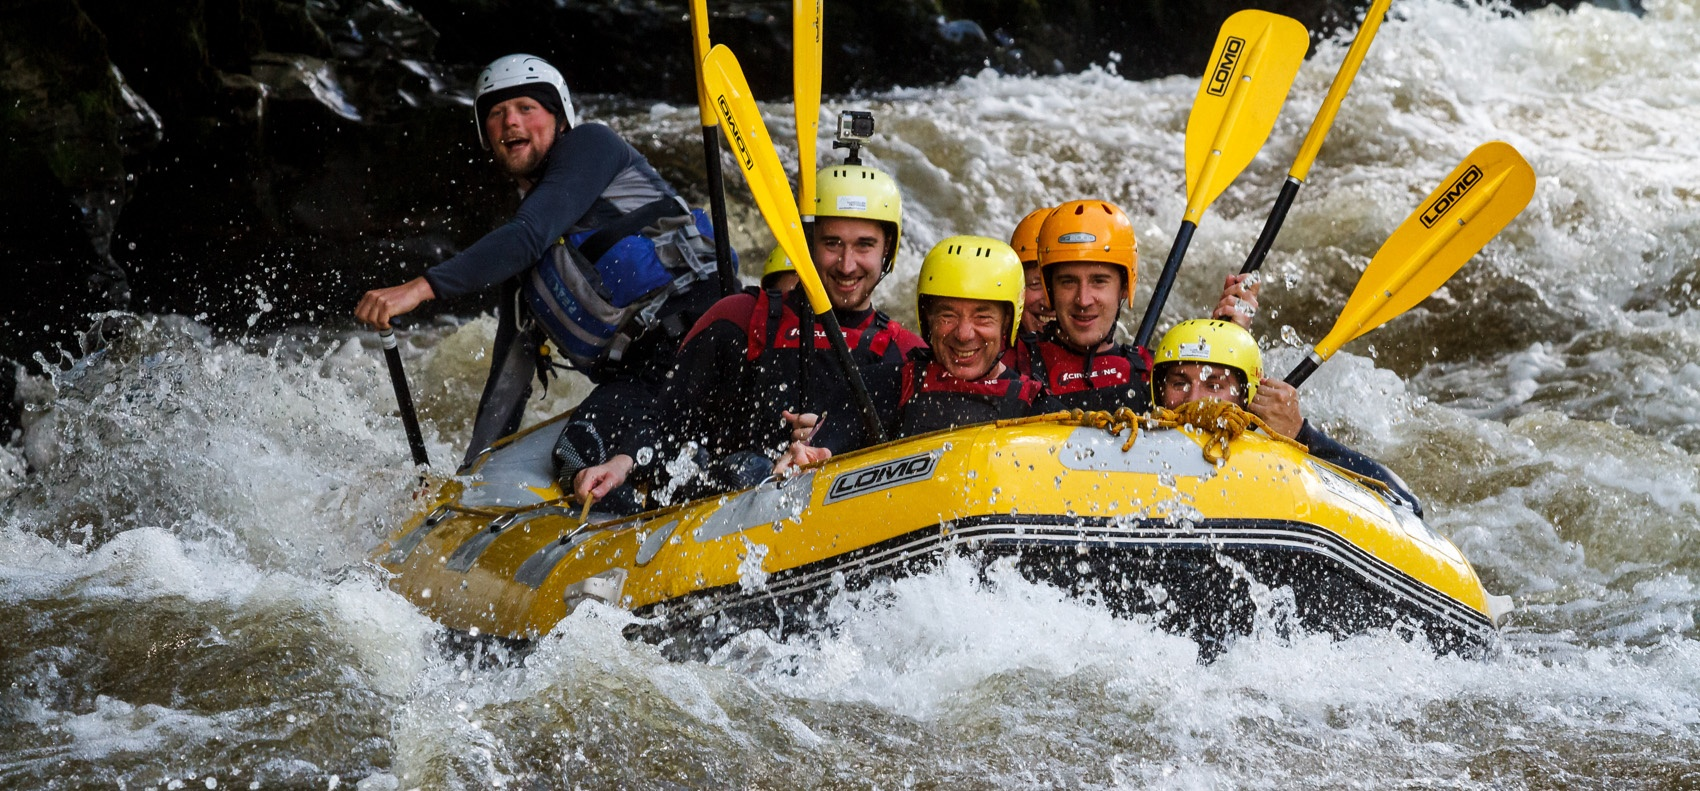 White Water Rafting Experience - North Wales-5